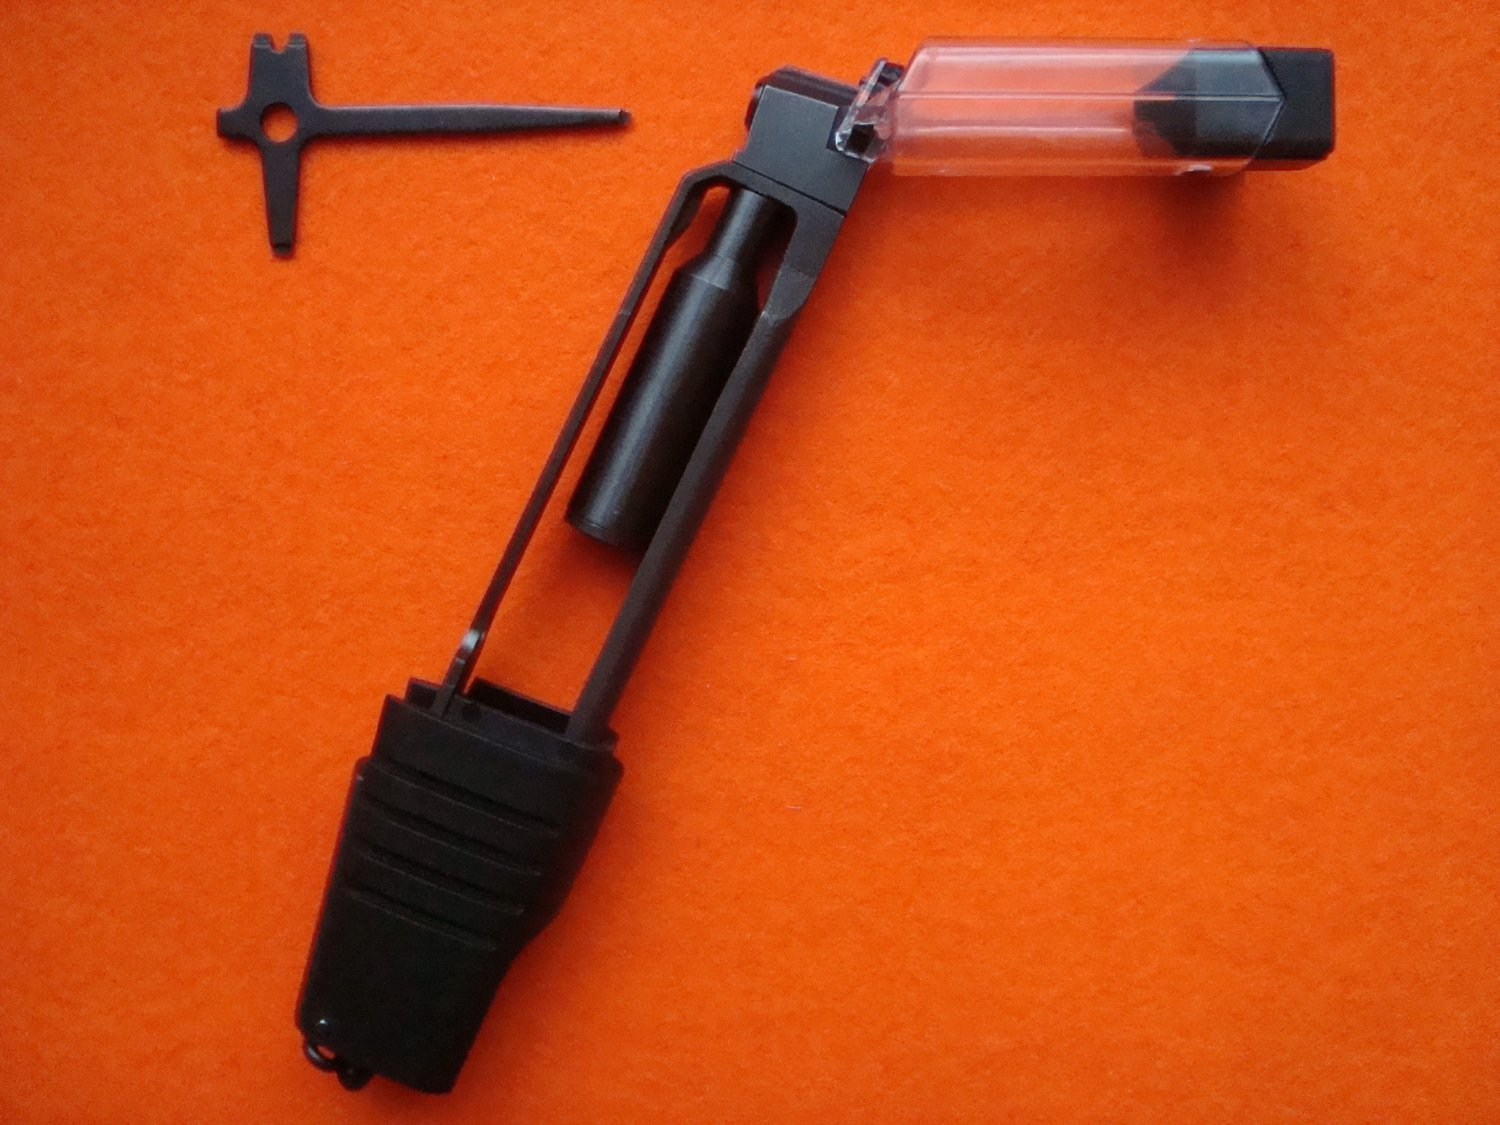 Magazine upgrade MP-661K Drozd with loader, screwdriver and internal modernized parts, made to order